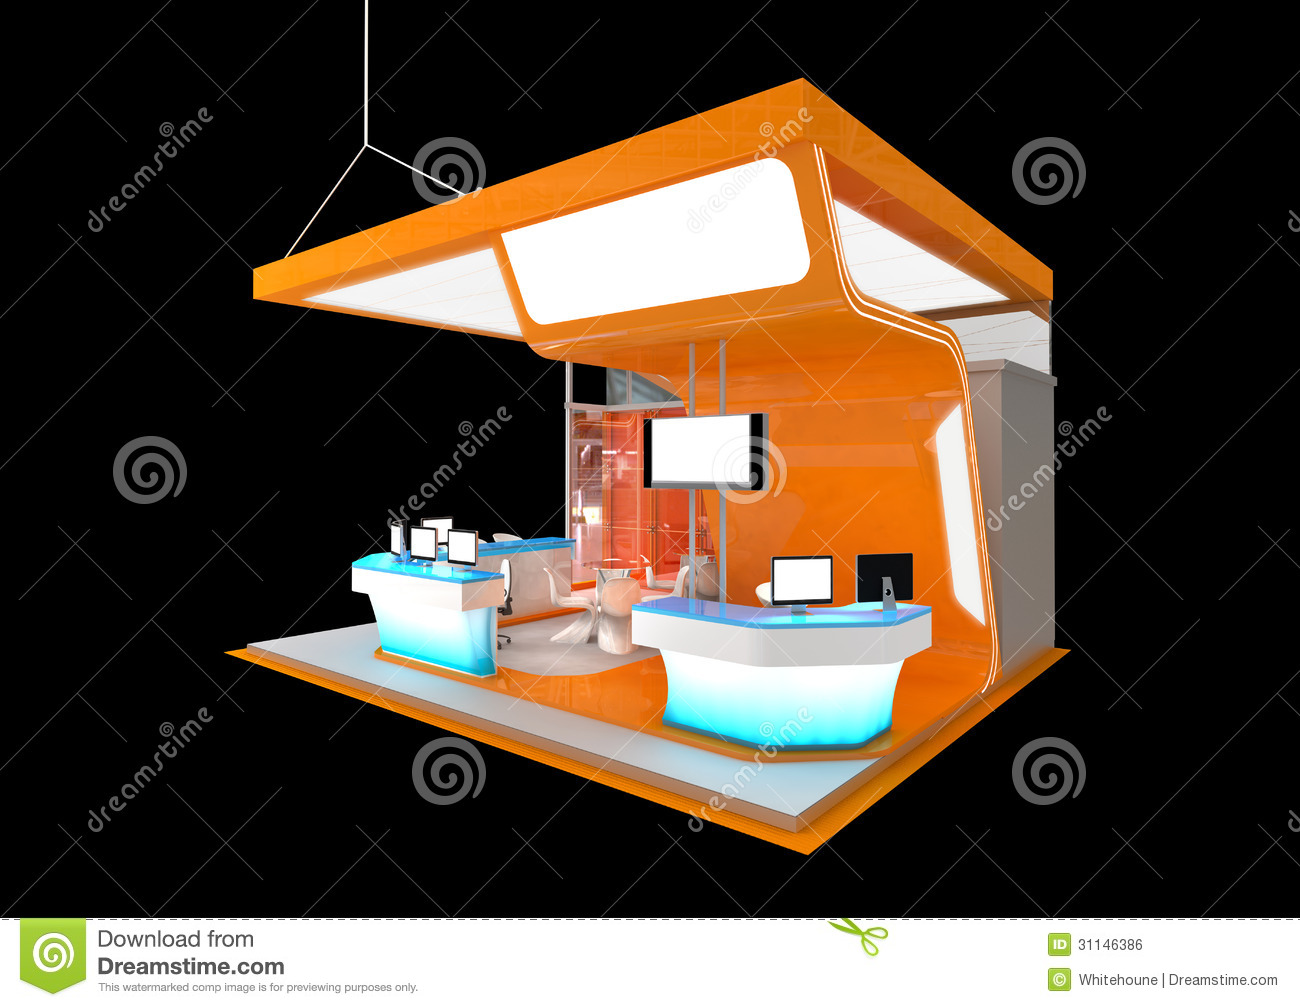 Modern Exhibition Stand By Me : Exhibition stand royalty free stock image